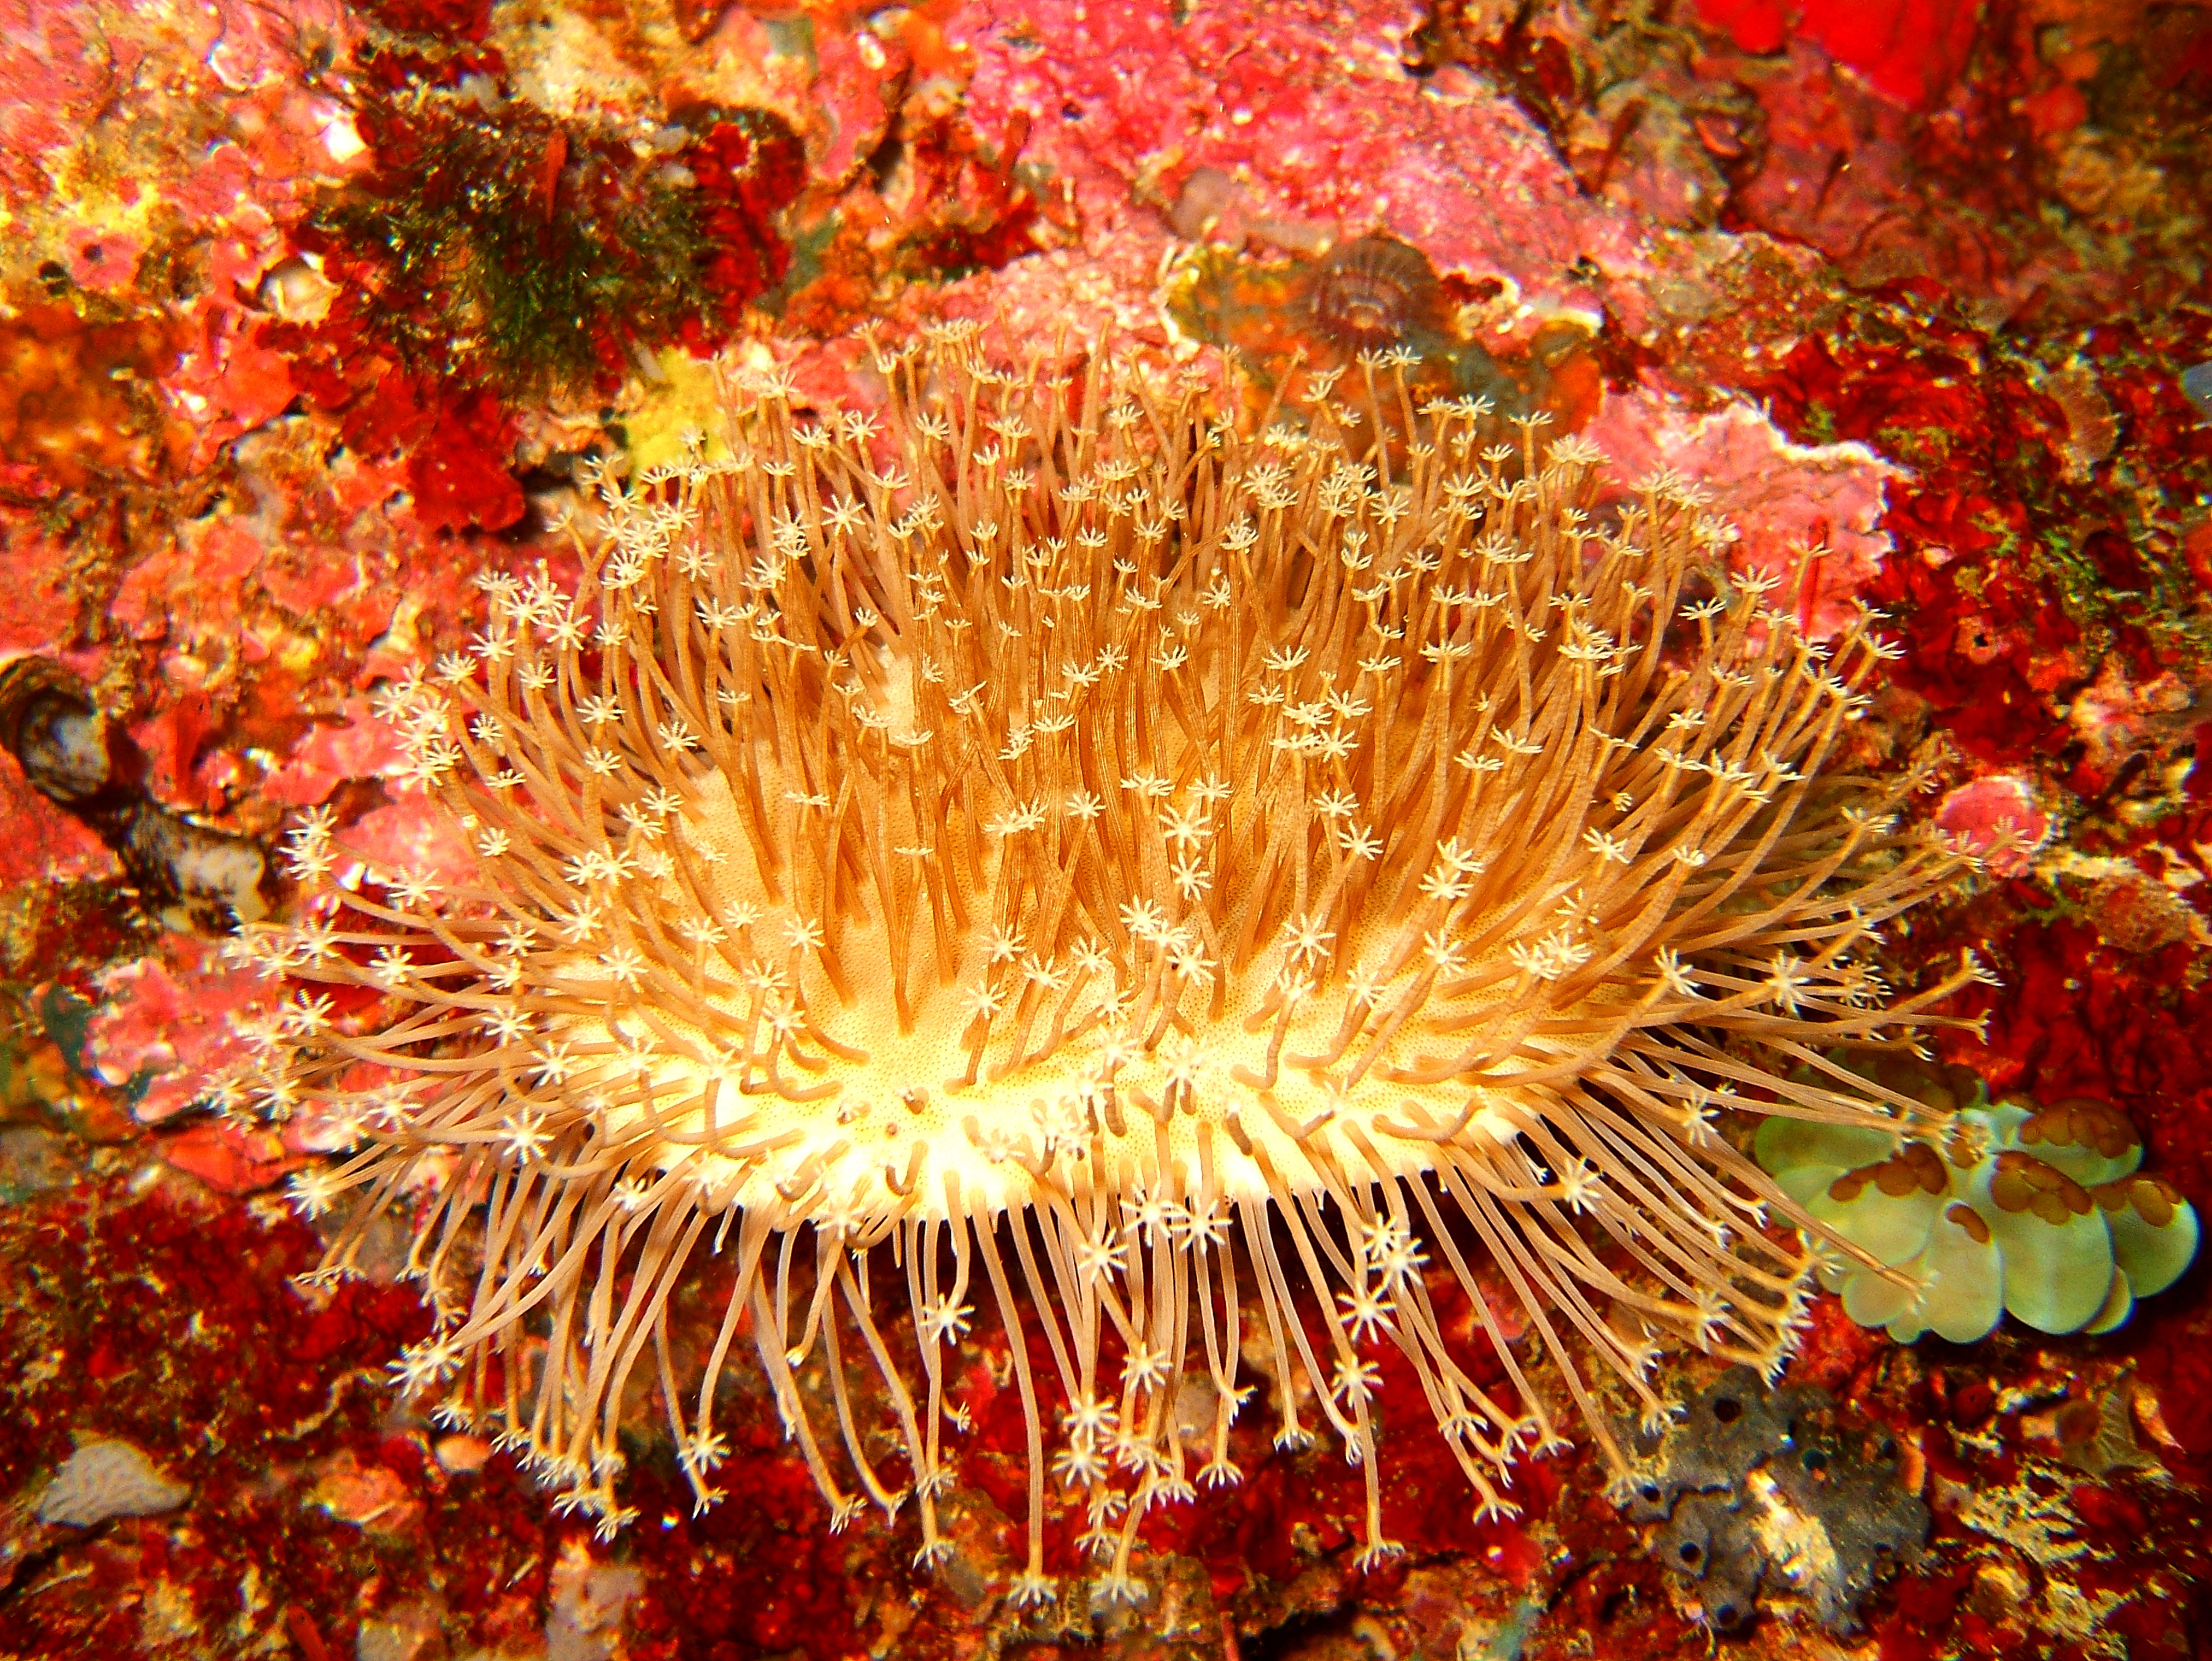 Philippines Cebu Moal Boal 20051226 Dive 1 Kasai Point 12